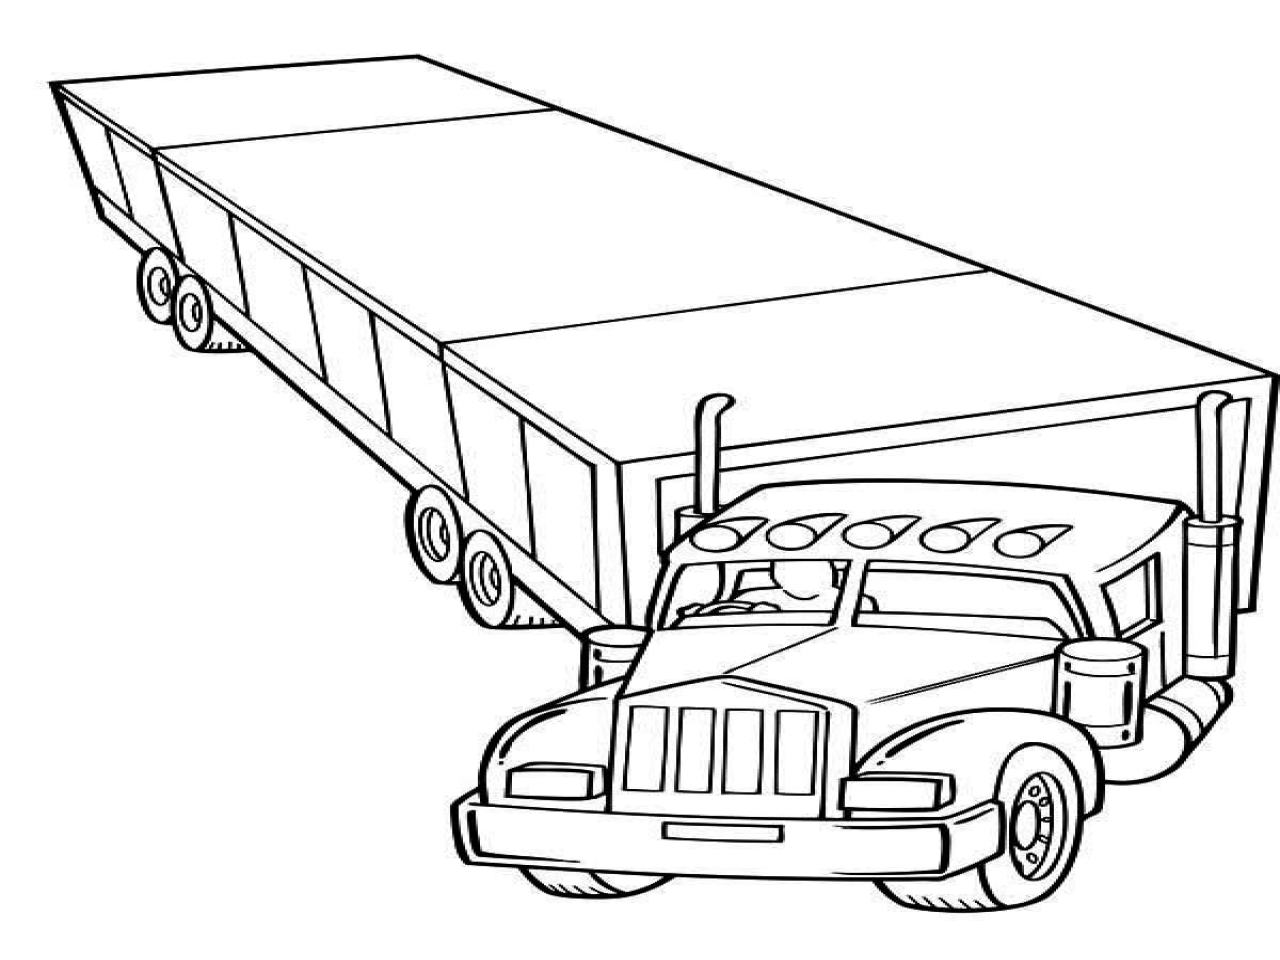 horse trailer coloring pages truck and trailer coloring pages at getcoloringscom coloring horse trailer pages